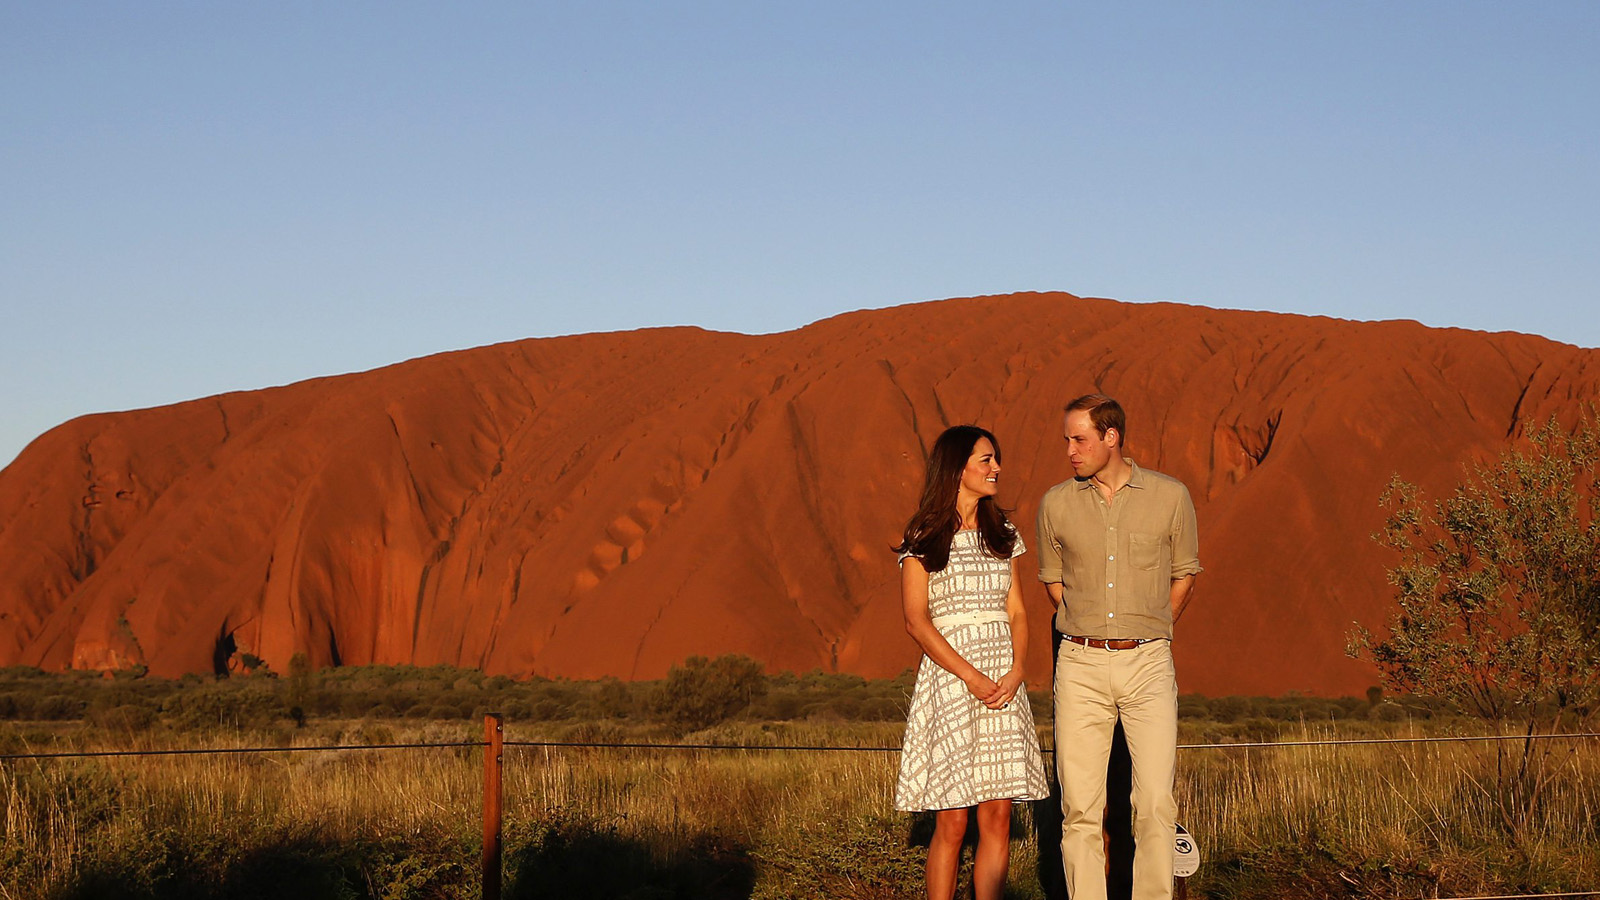 Britain's Prince William and his wife Catherine, Duchess of Cambridge, pose in front of the Uluru, also known as Ayers Rock, April 22, 2014. Britain's Prince William, his wife Kate and their son Prince George are on a three-week tour of New Zealand and Australia. REUTERS/Phil Noble (AUSTRALIA - Tags: ROYALS ENTERTAINMENT) - RTR3M9IV